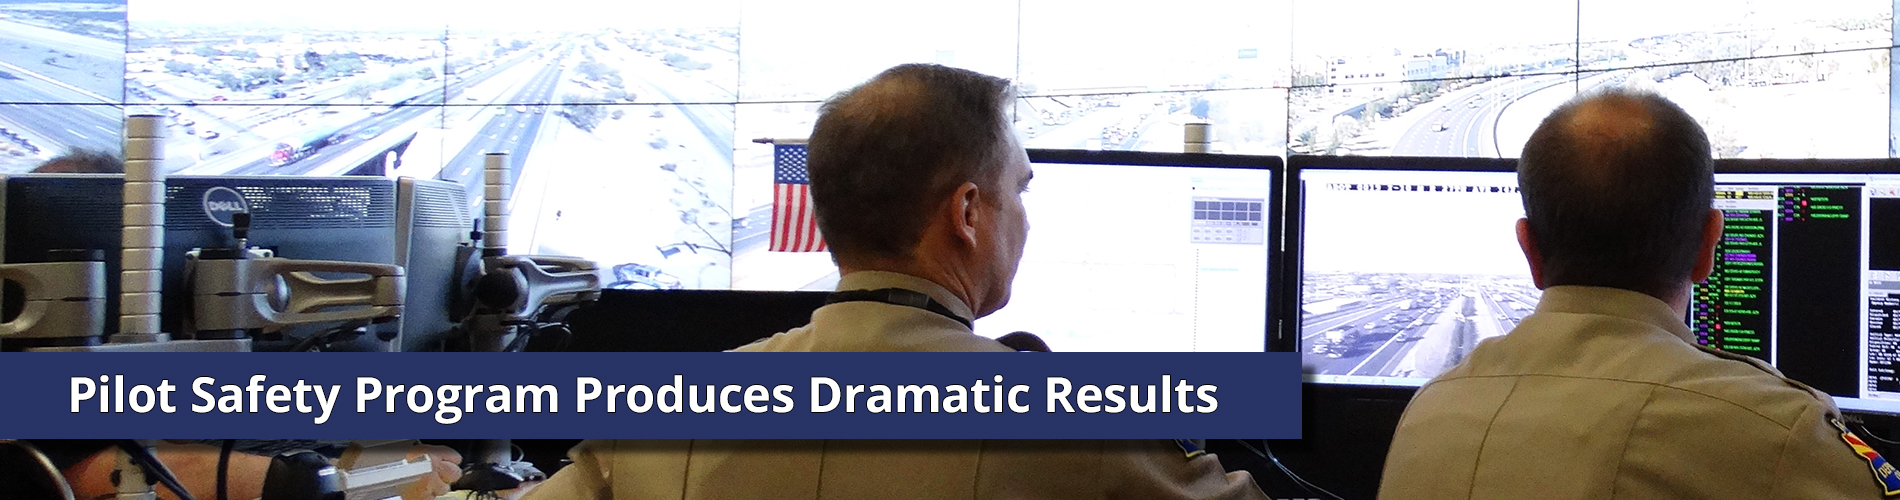 Pilot-Safety-Program-Produces-Dramatic-Results